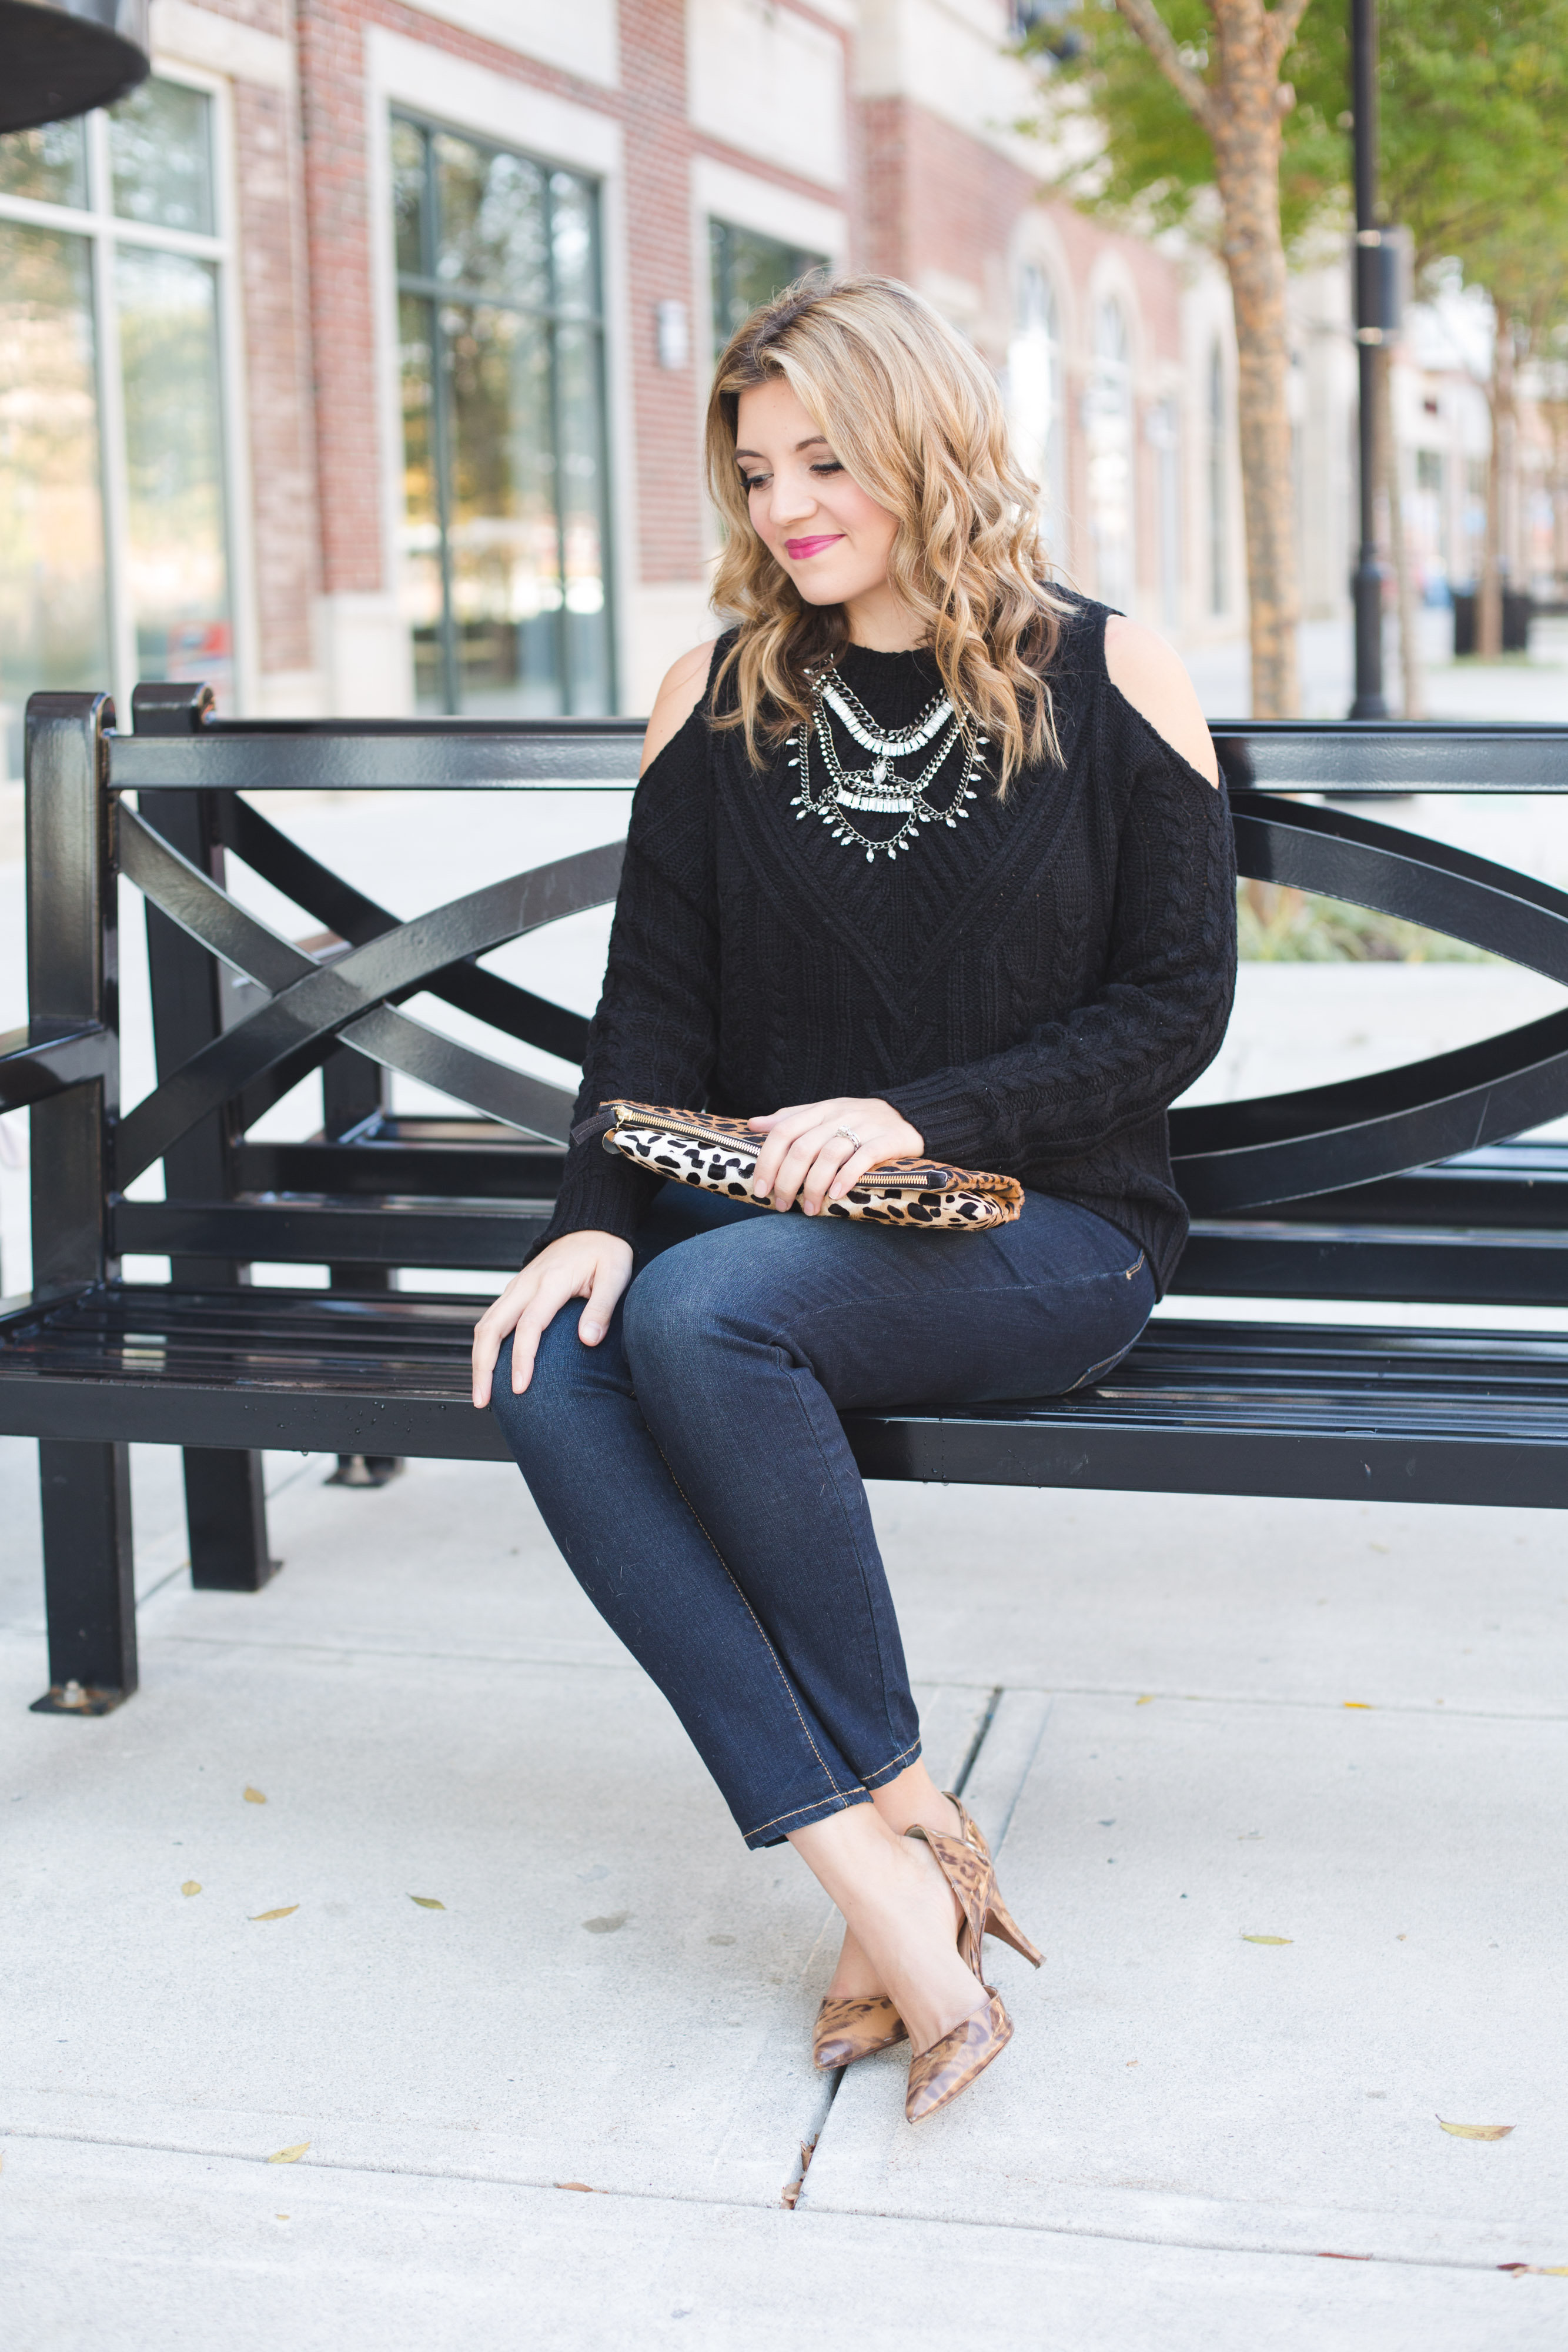 jeans holiday party outfit - dark wash skinny jeans with heels, black sweater, crystal statement necklace | www.bylaurenm.com